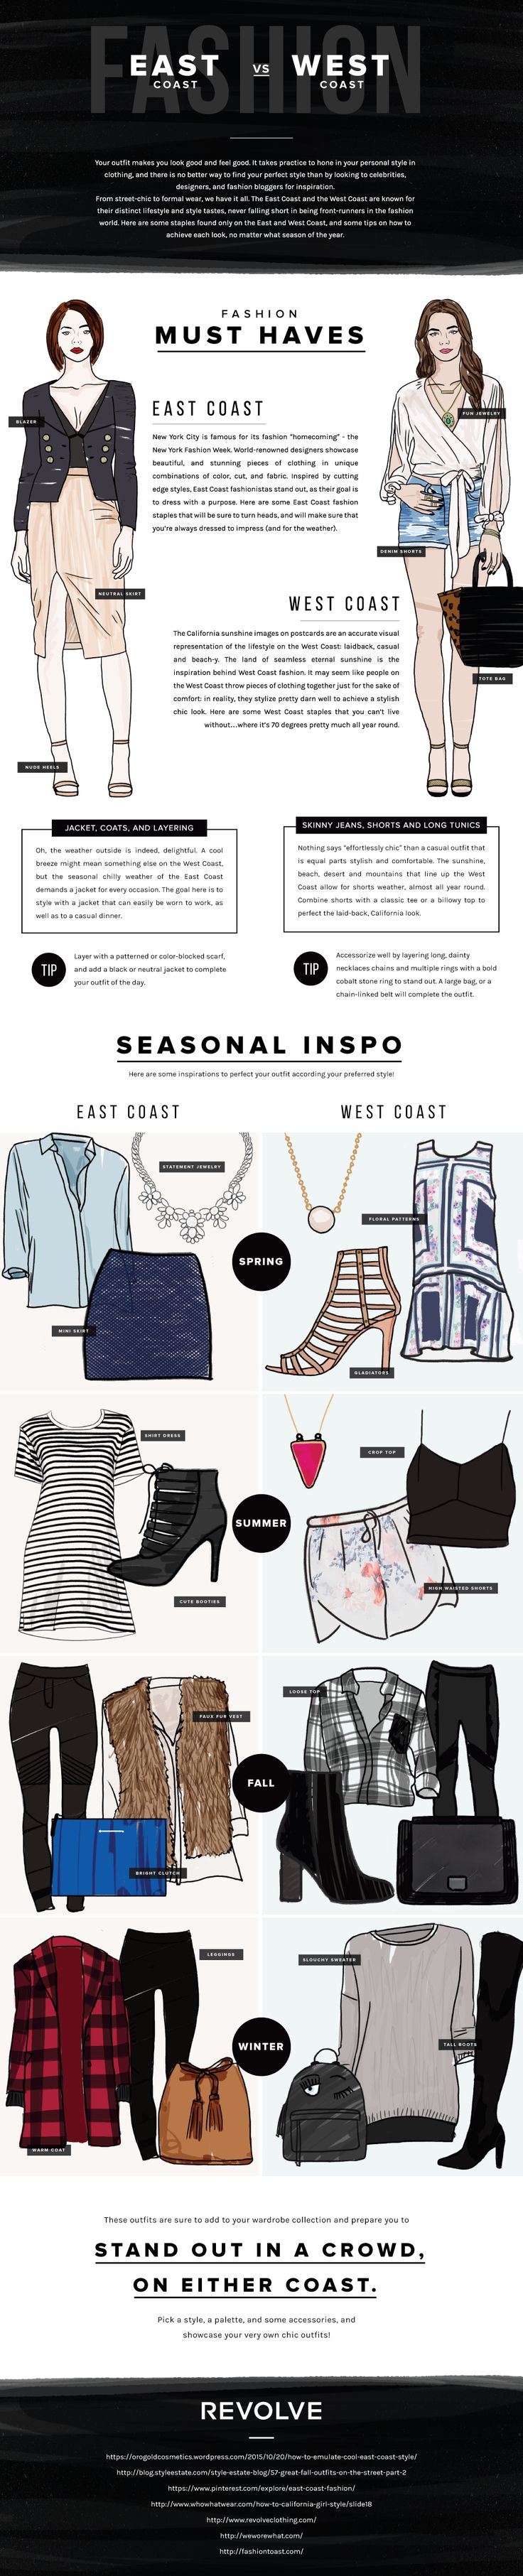 East vs. West Fashion Must Haves Infographic